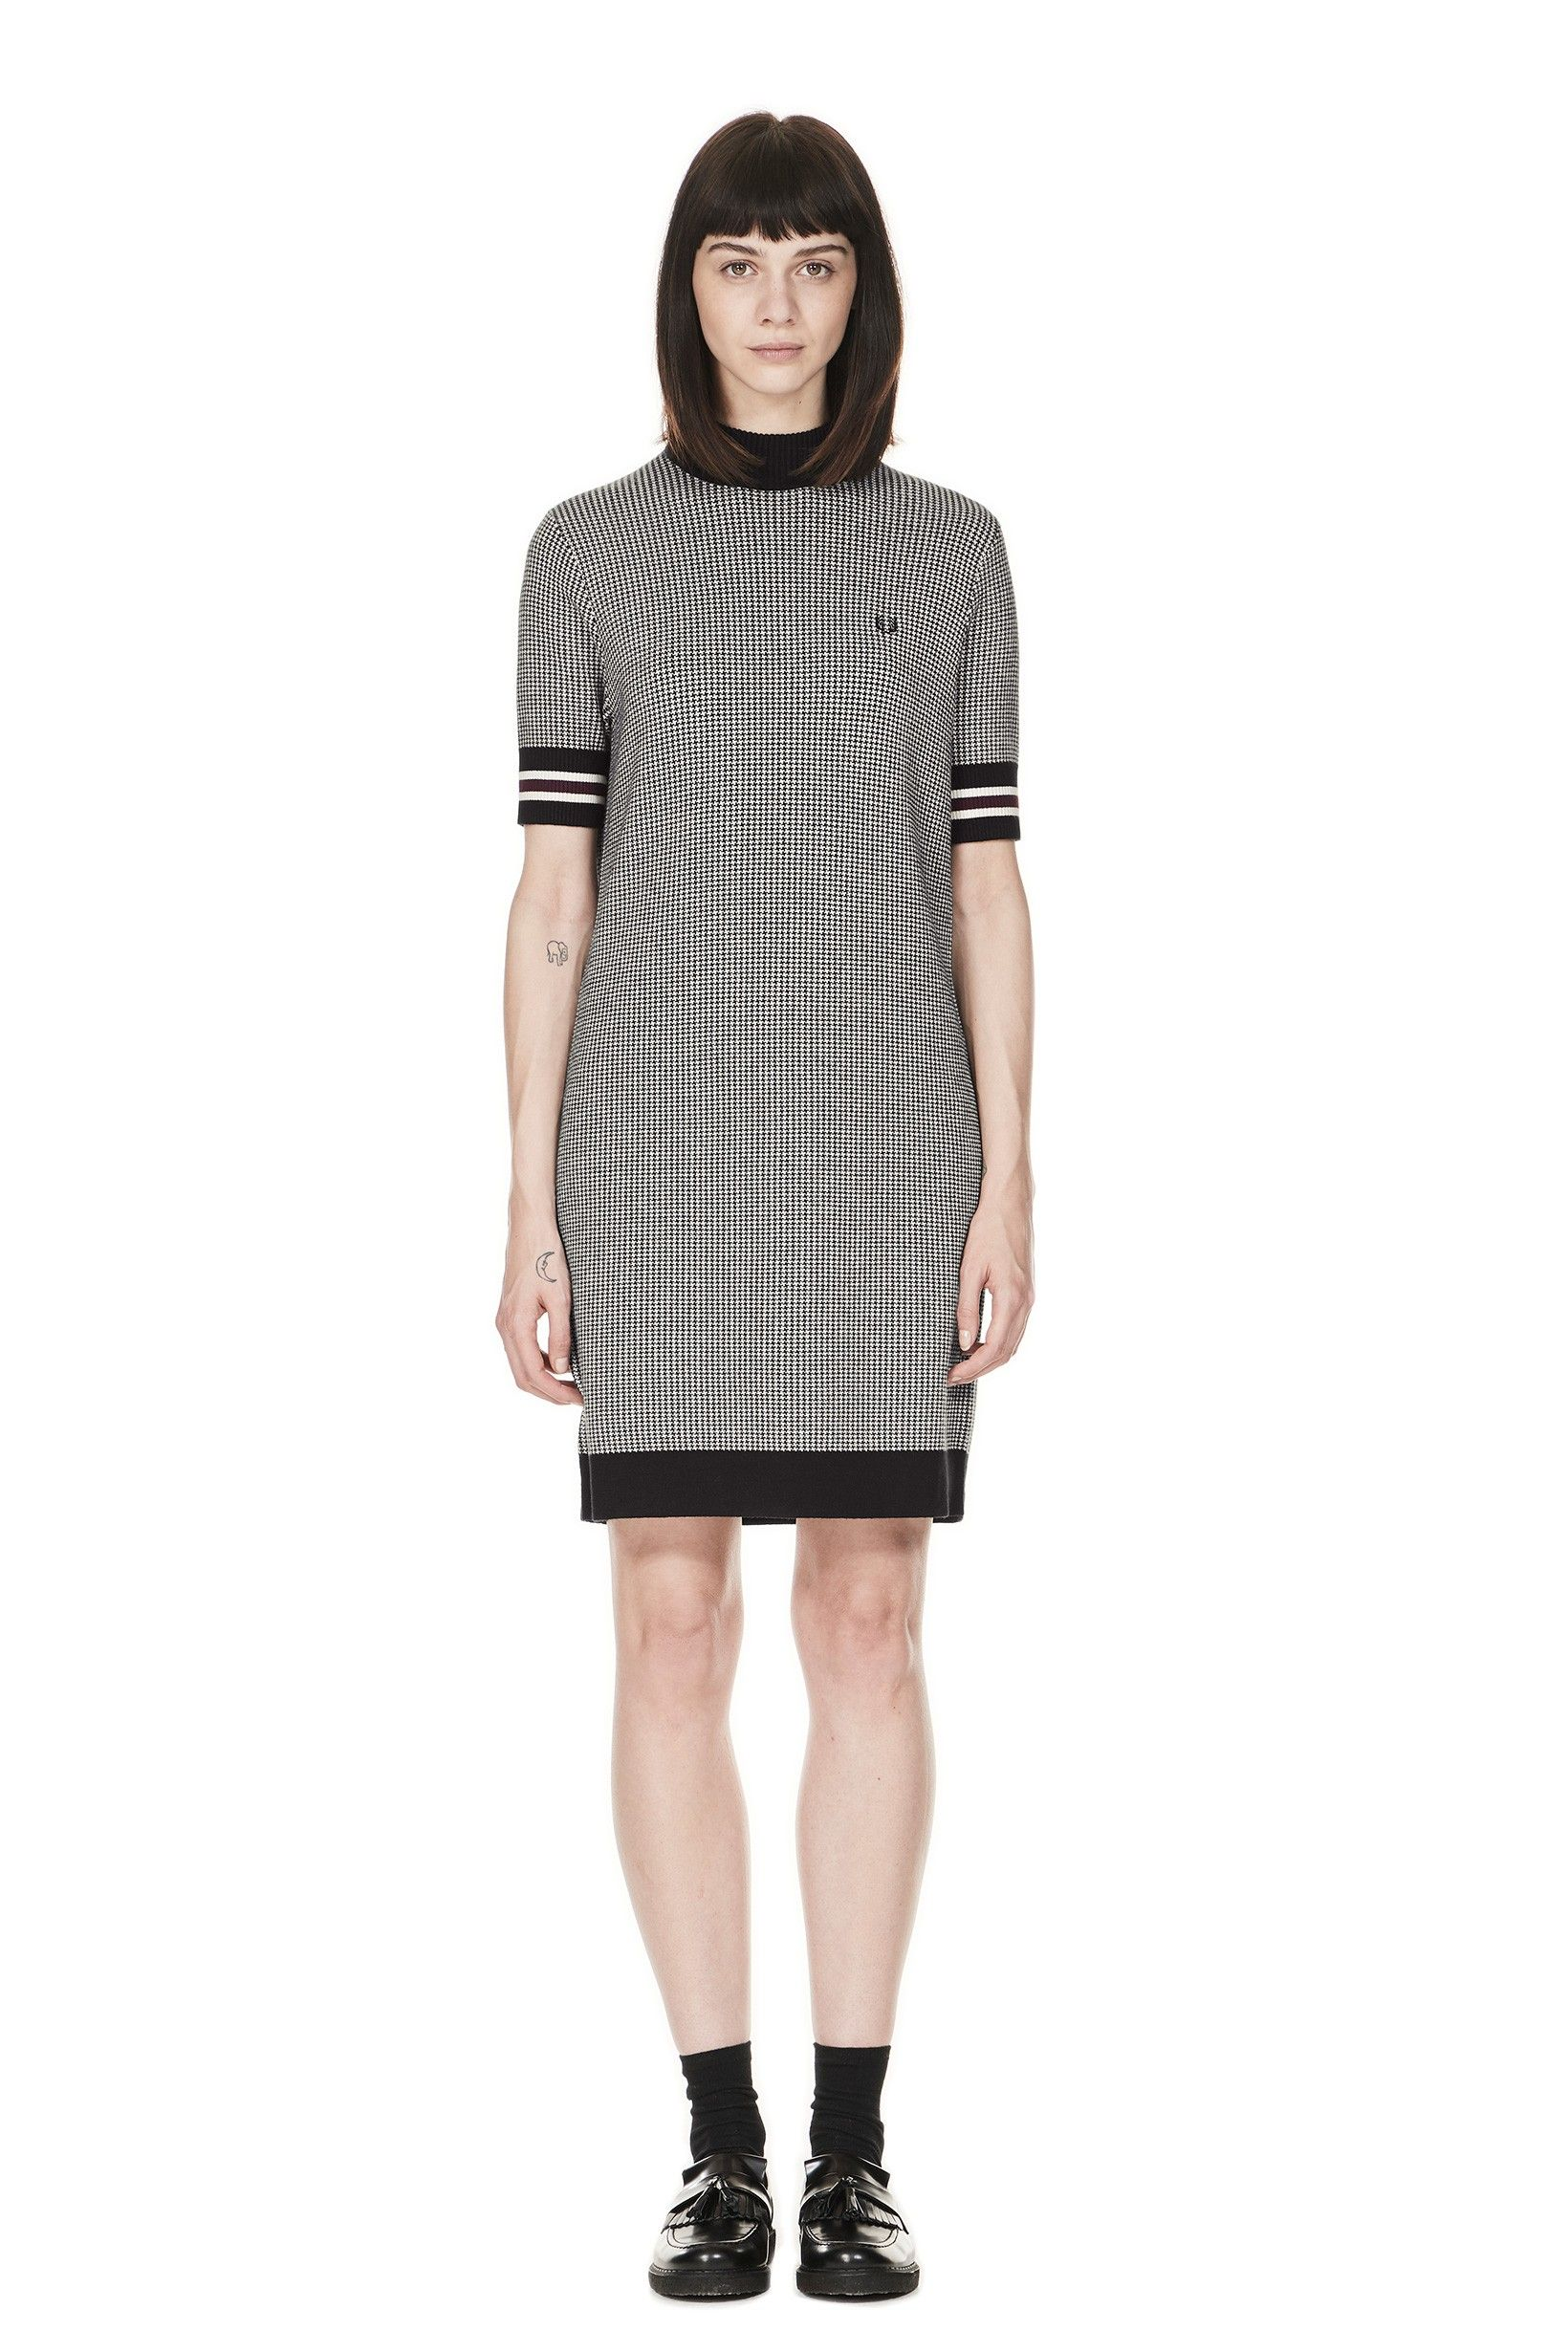 dbb31b34de Fred Perry - Houndstooth Knitted Dress Black